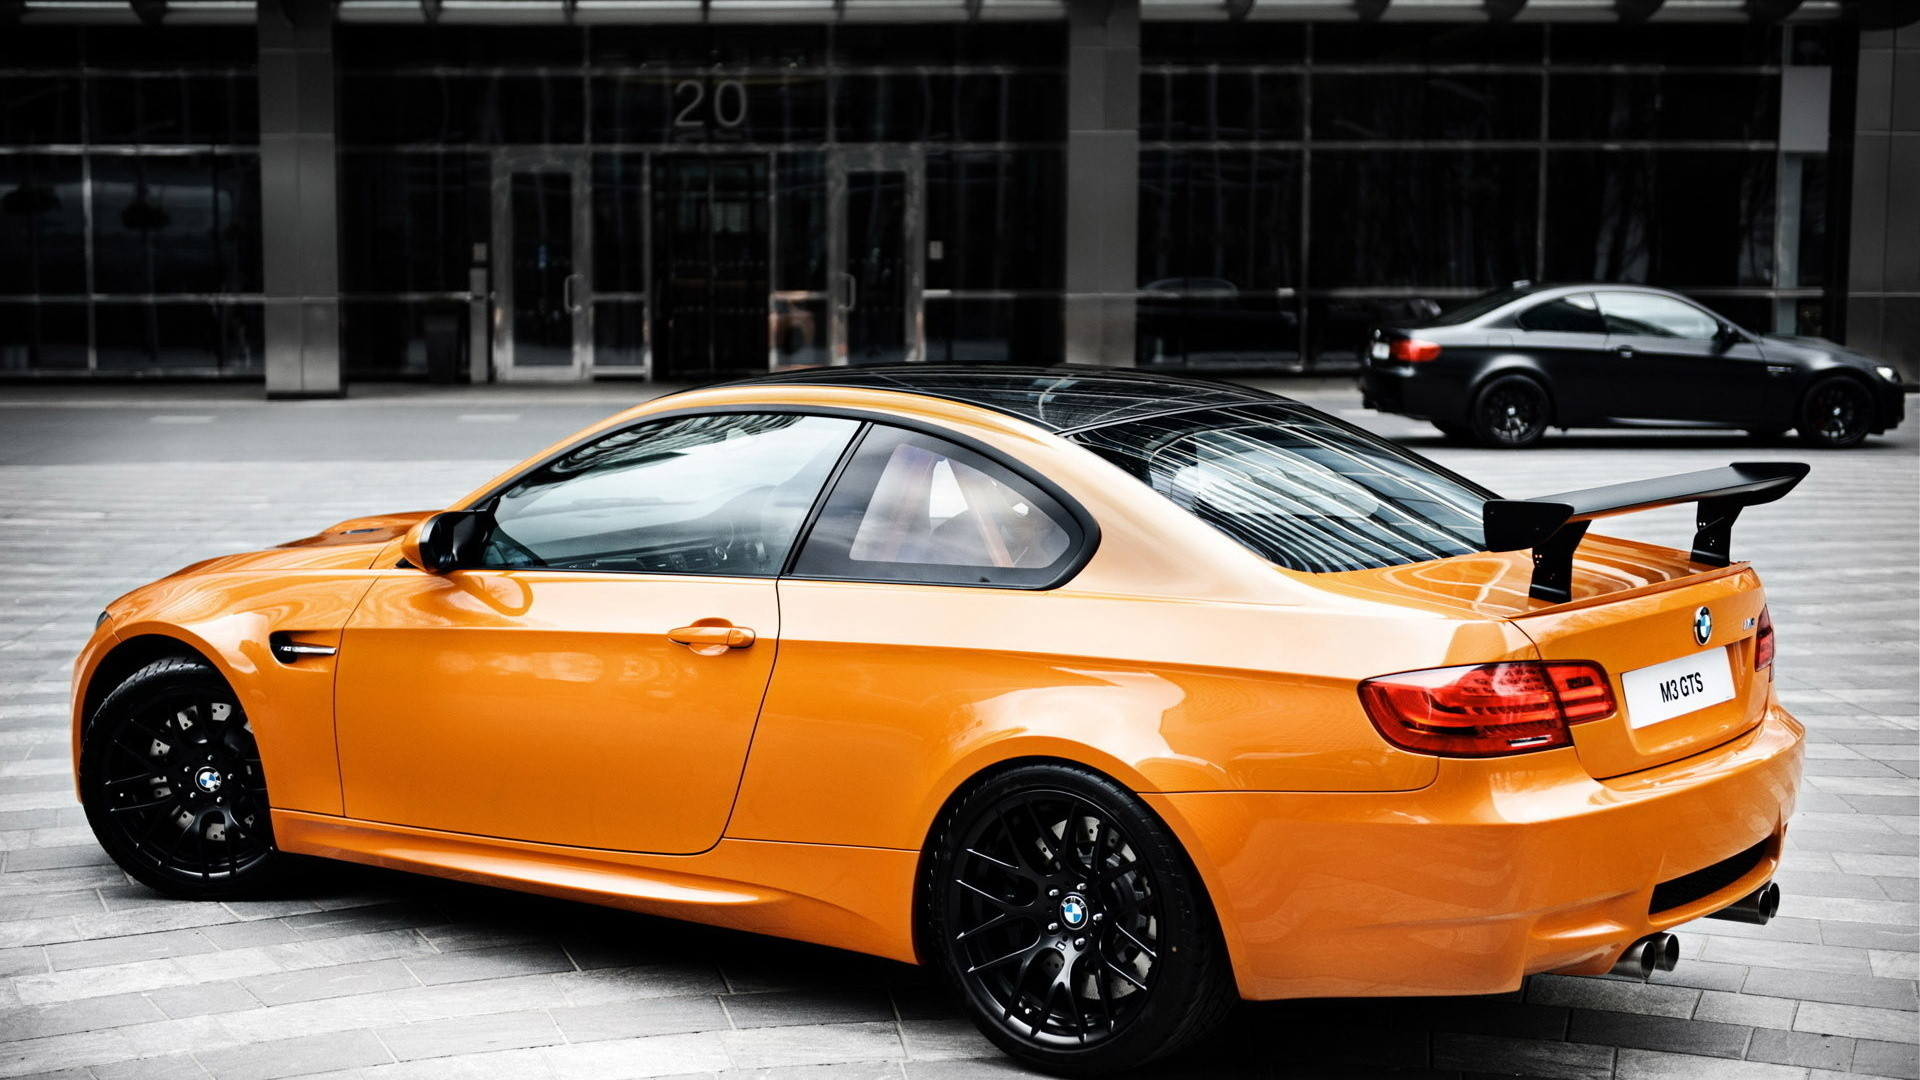 bmw-m-cool-hd-1920x1080-wallpaper-wp3603598